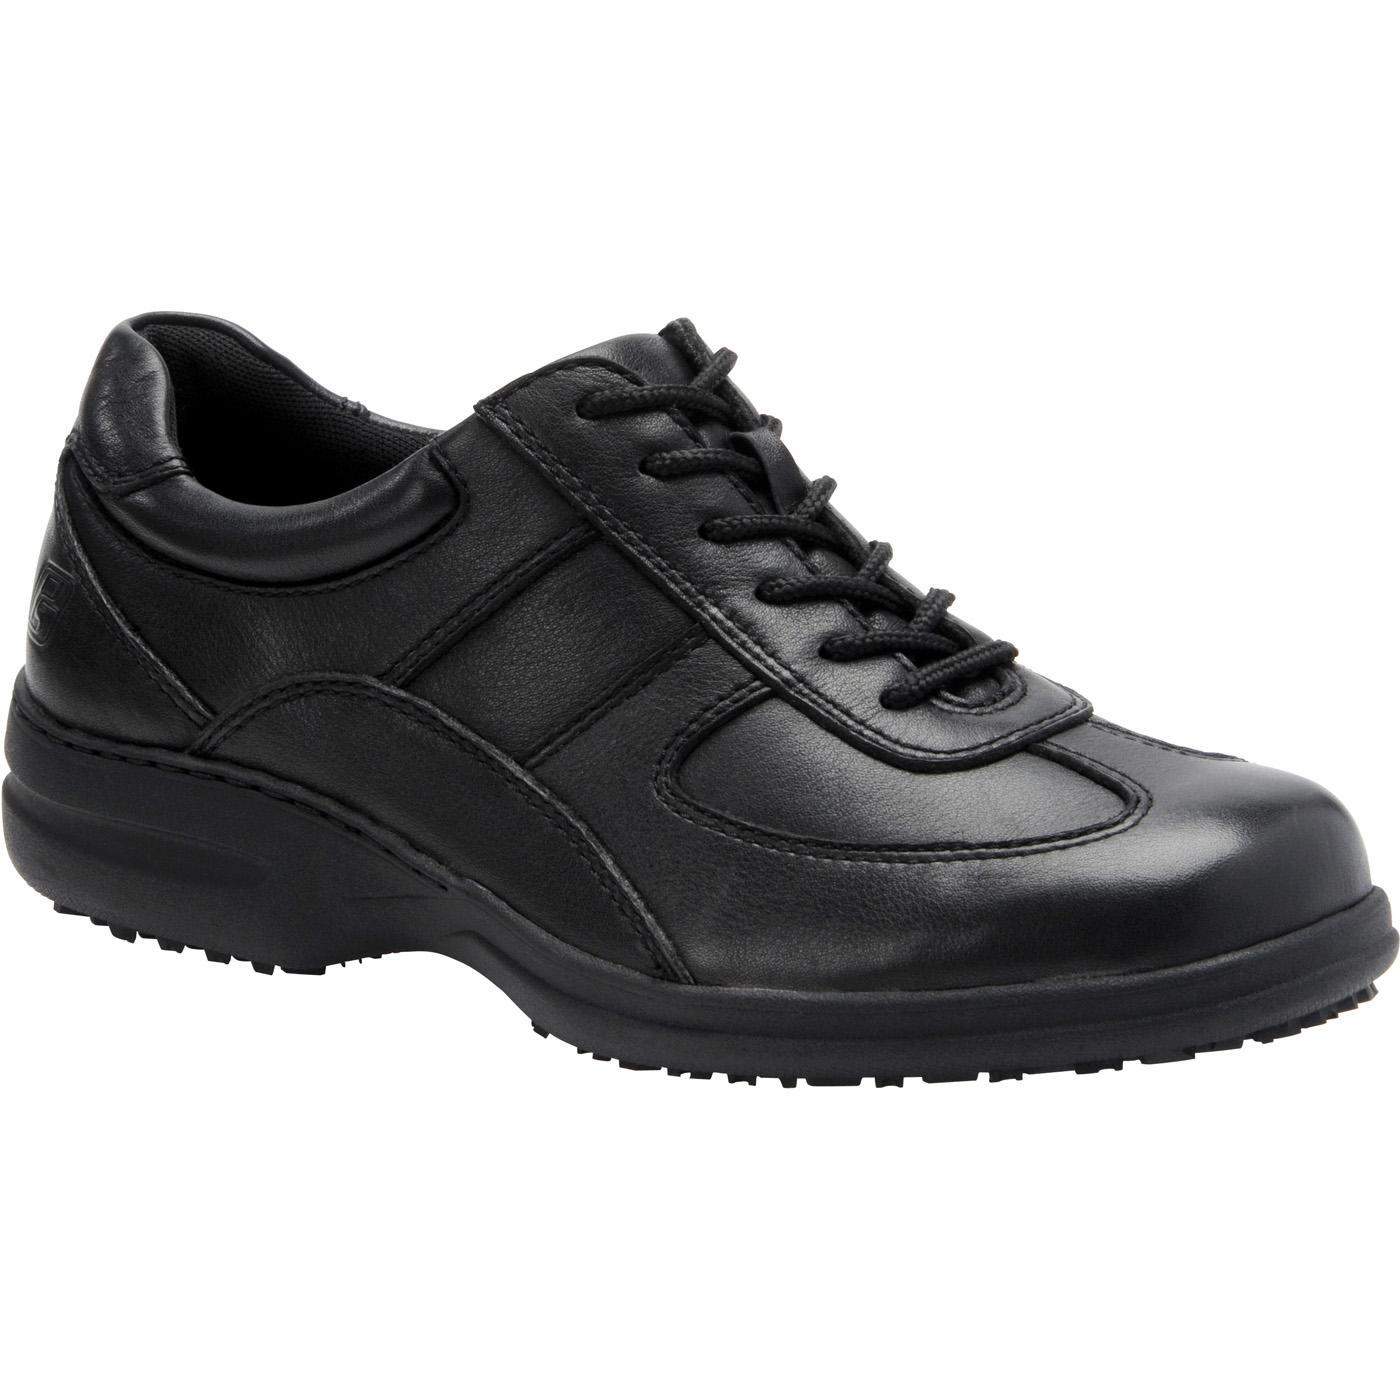 The official store of Lehigh Safety Shoes Coupon Code & Deals offers the best prices on Site and more. This page contains a list of all Lehigh Safety Shoes Coupon Code & Deals Store coupon codes that are available on Lehigh Safety Shoes Coupon Code & Deals store/5(50).